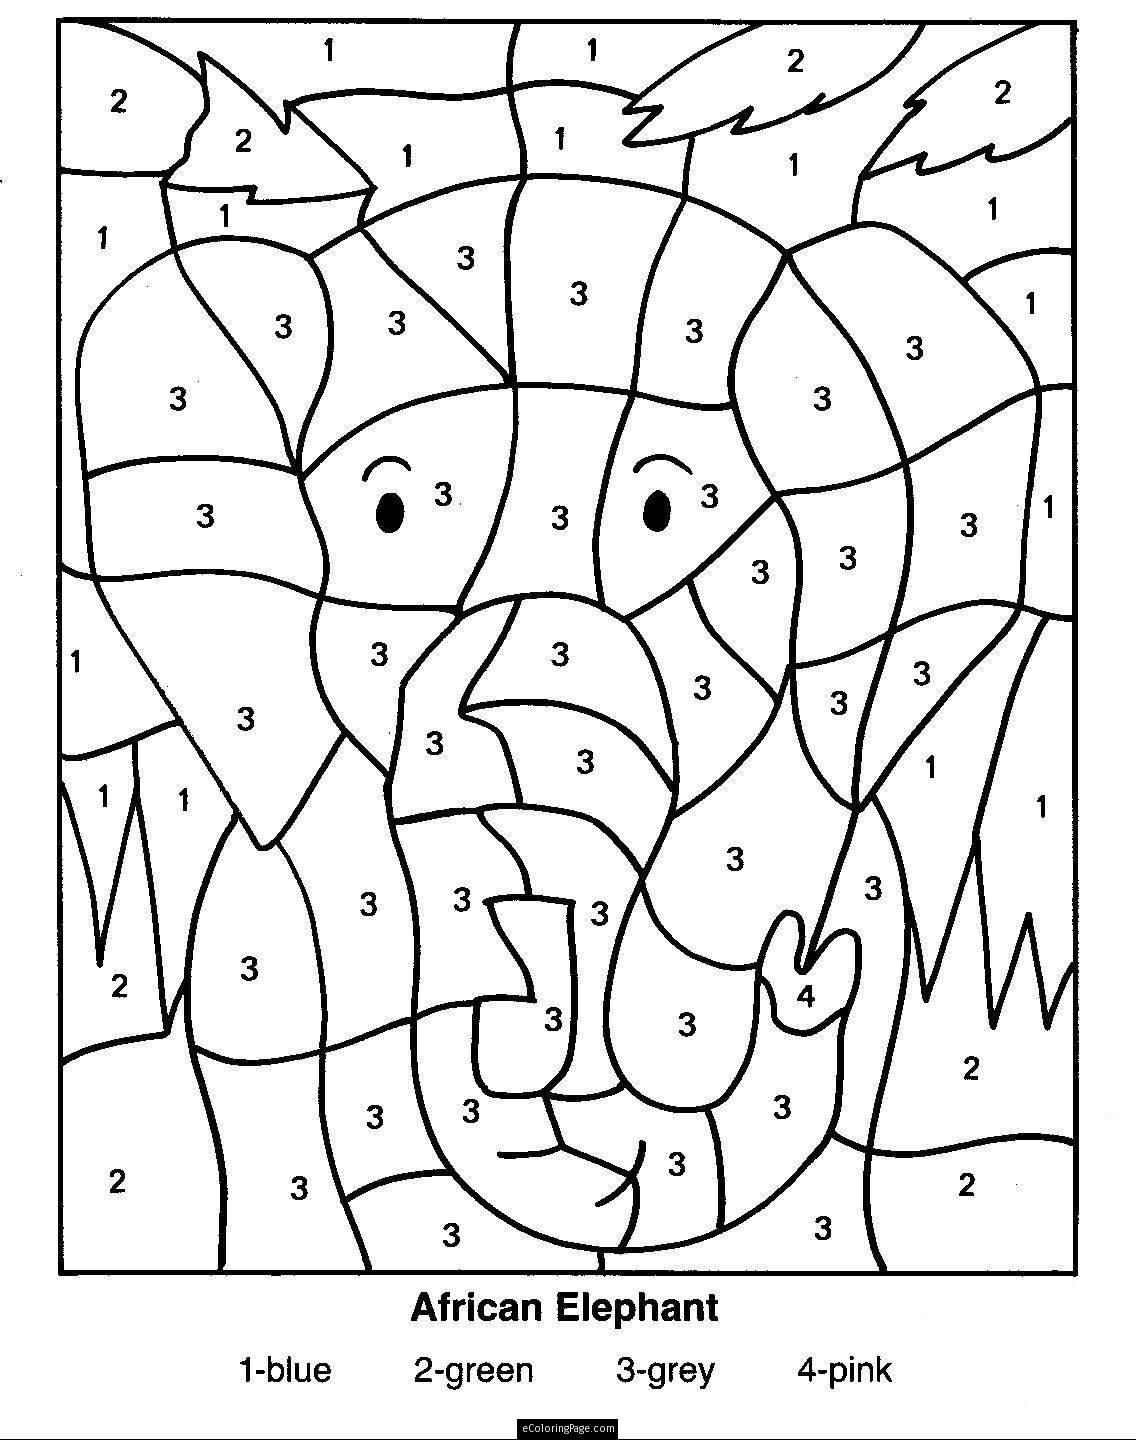 Free coloring pages for kindergarten printable - Color By Numbers Elephant Coloring Page For Kids Printable Ecoloringpage Com Printable Coloring